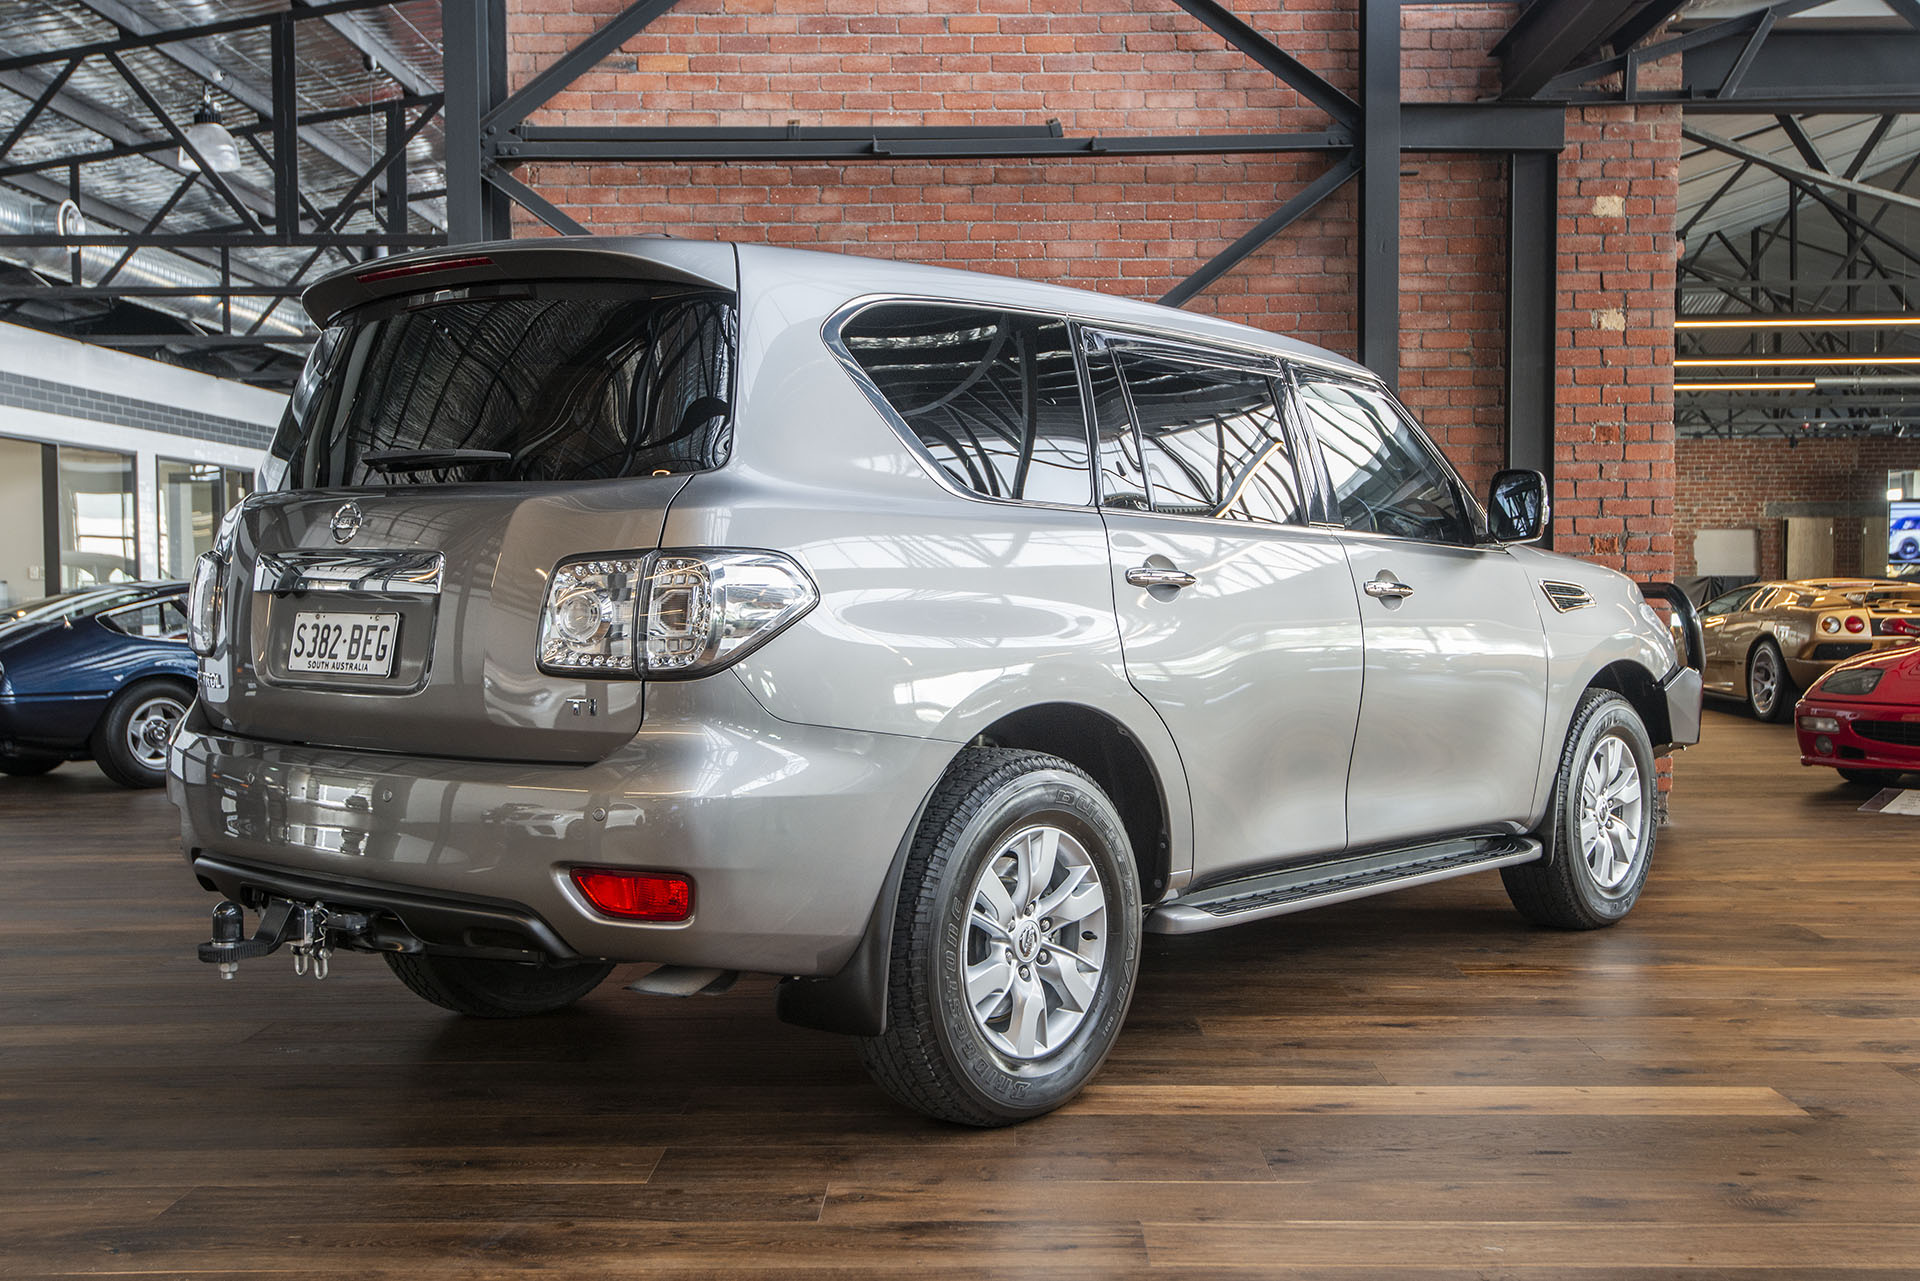 Used Cars For Sale By Private Owner >> 2013 Nissan Patrol Y62 Ti Wagon - Richmonds - Classic and ...